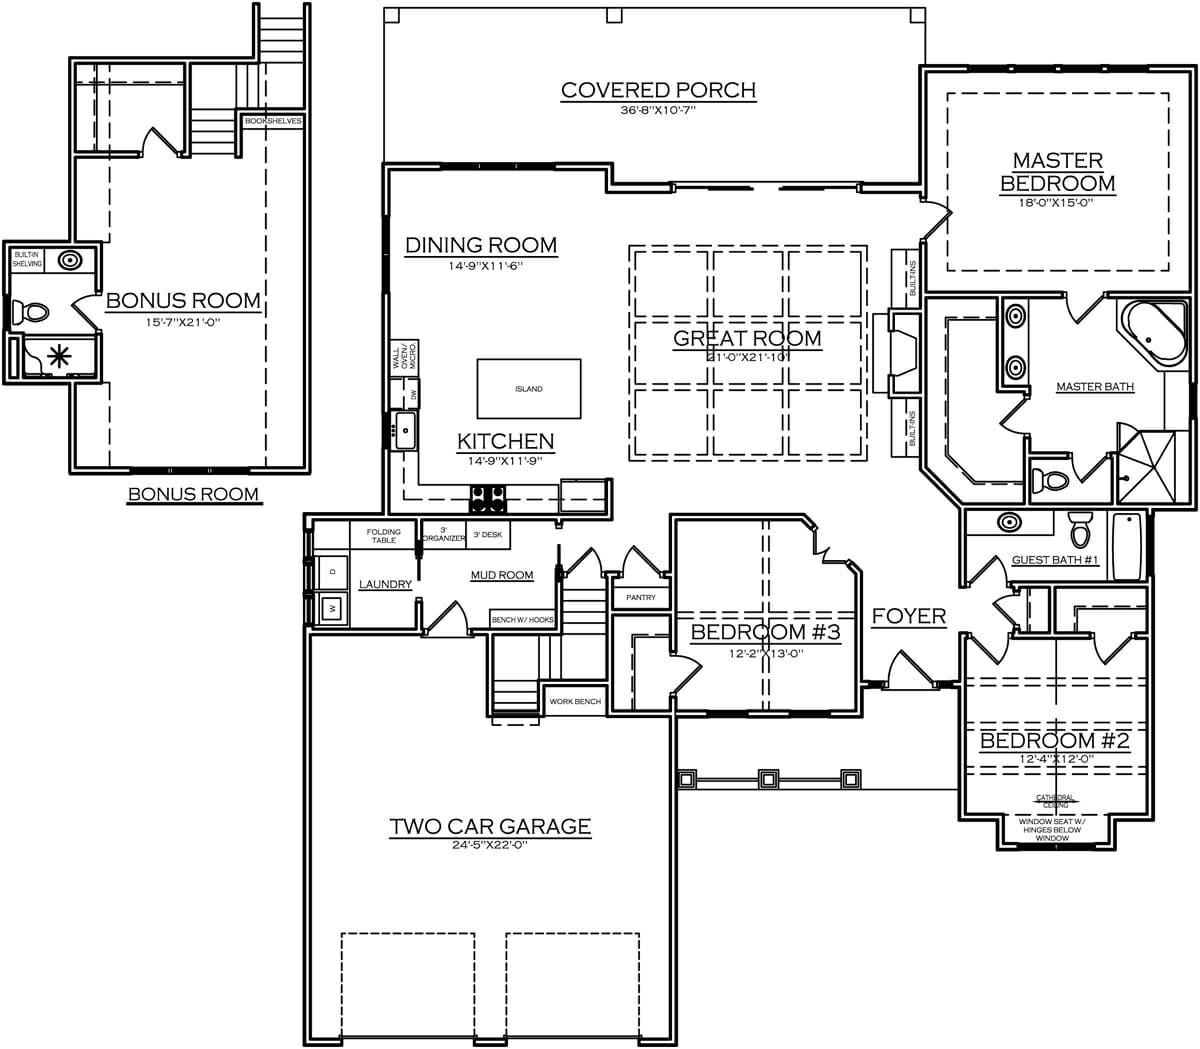 Bill clark homes floor plans bill clark homes floor for Design homes angela clark